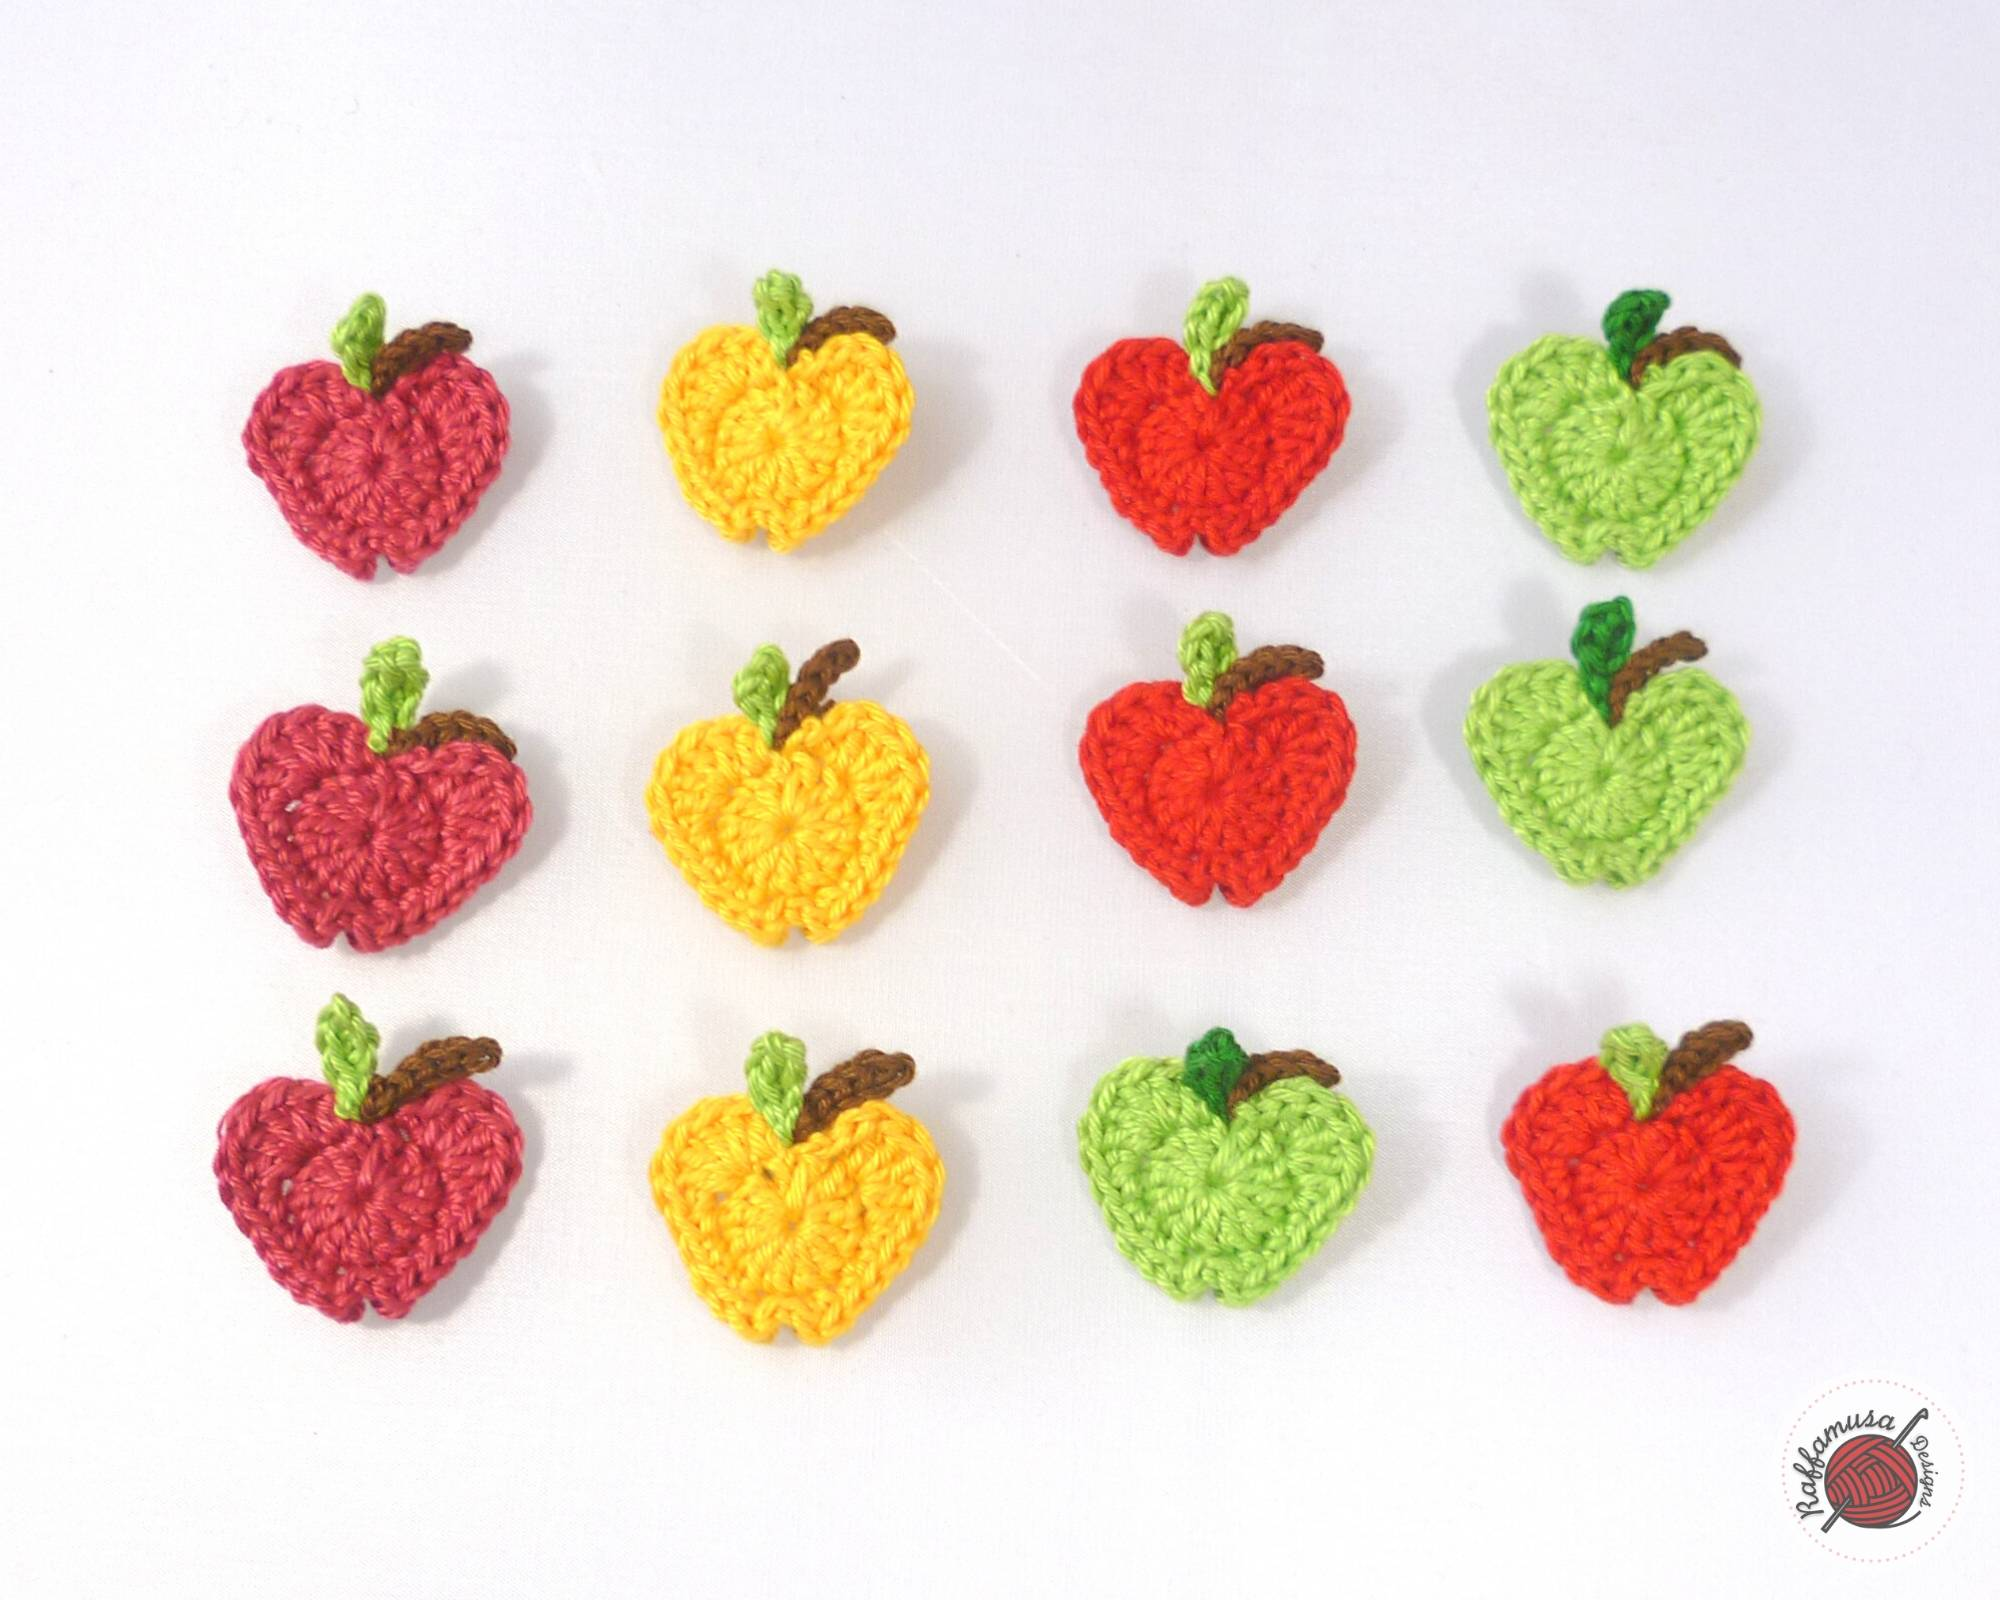 In Love with Apples Crochet Applique - Free Pattern by RaffamusaDesigns